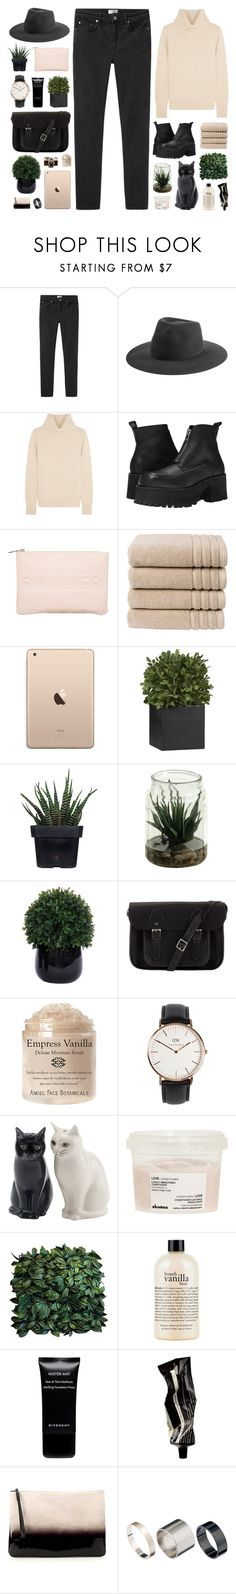 """""""wonderland"""" by karm-a ❤ liked on Polyvore featuring Acne Studios, rag & bone, N.Peal, UNIF, Miss Selfridge, Christy, Crate and Barrel, Alöe, Lux-Art Silks and The Cambridge Satchel Company"""